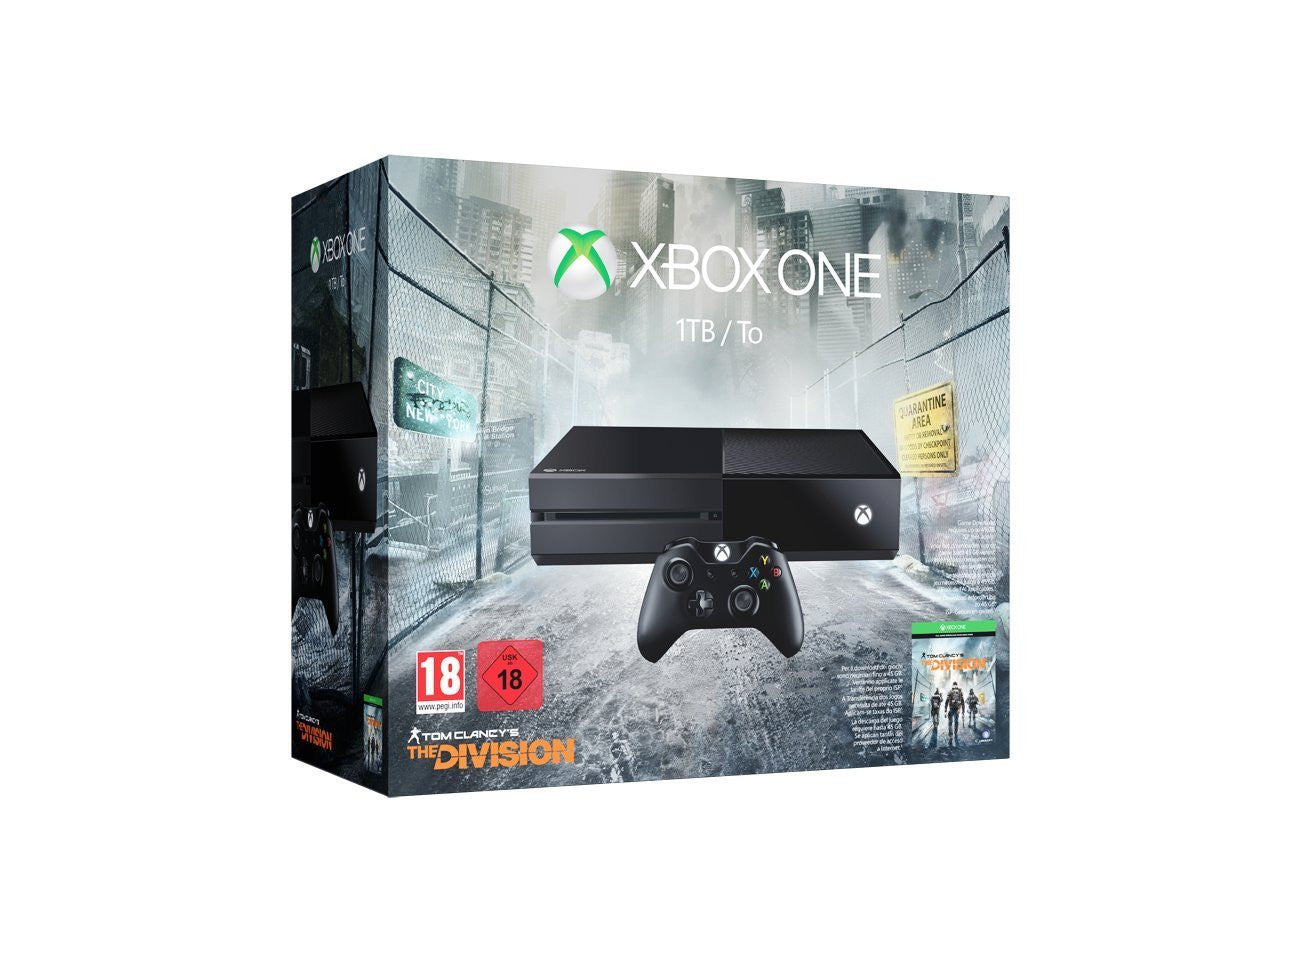 Xbox One 1 TB - with The Division